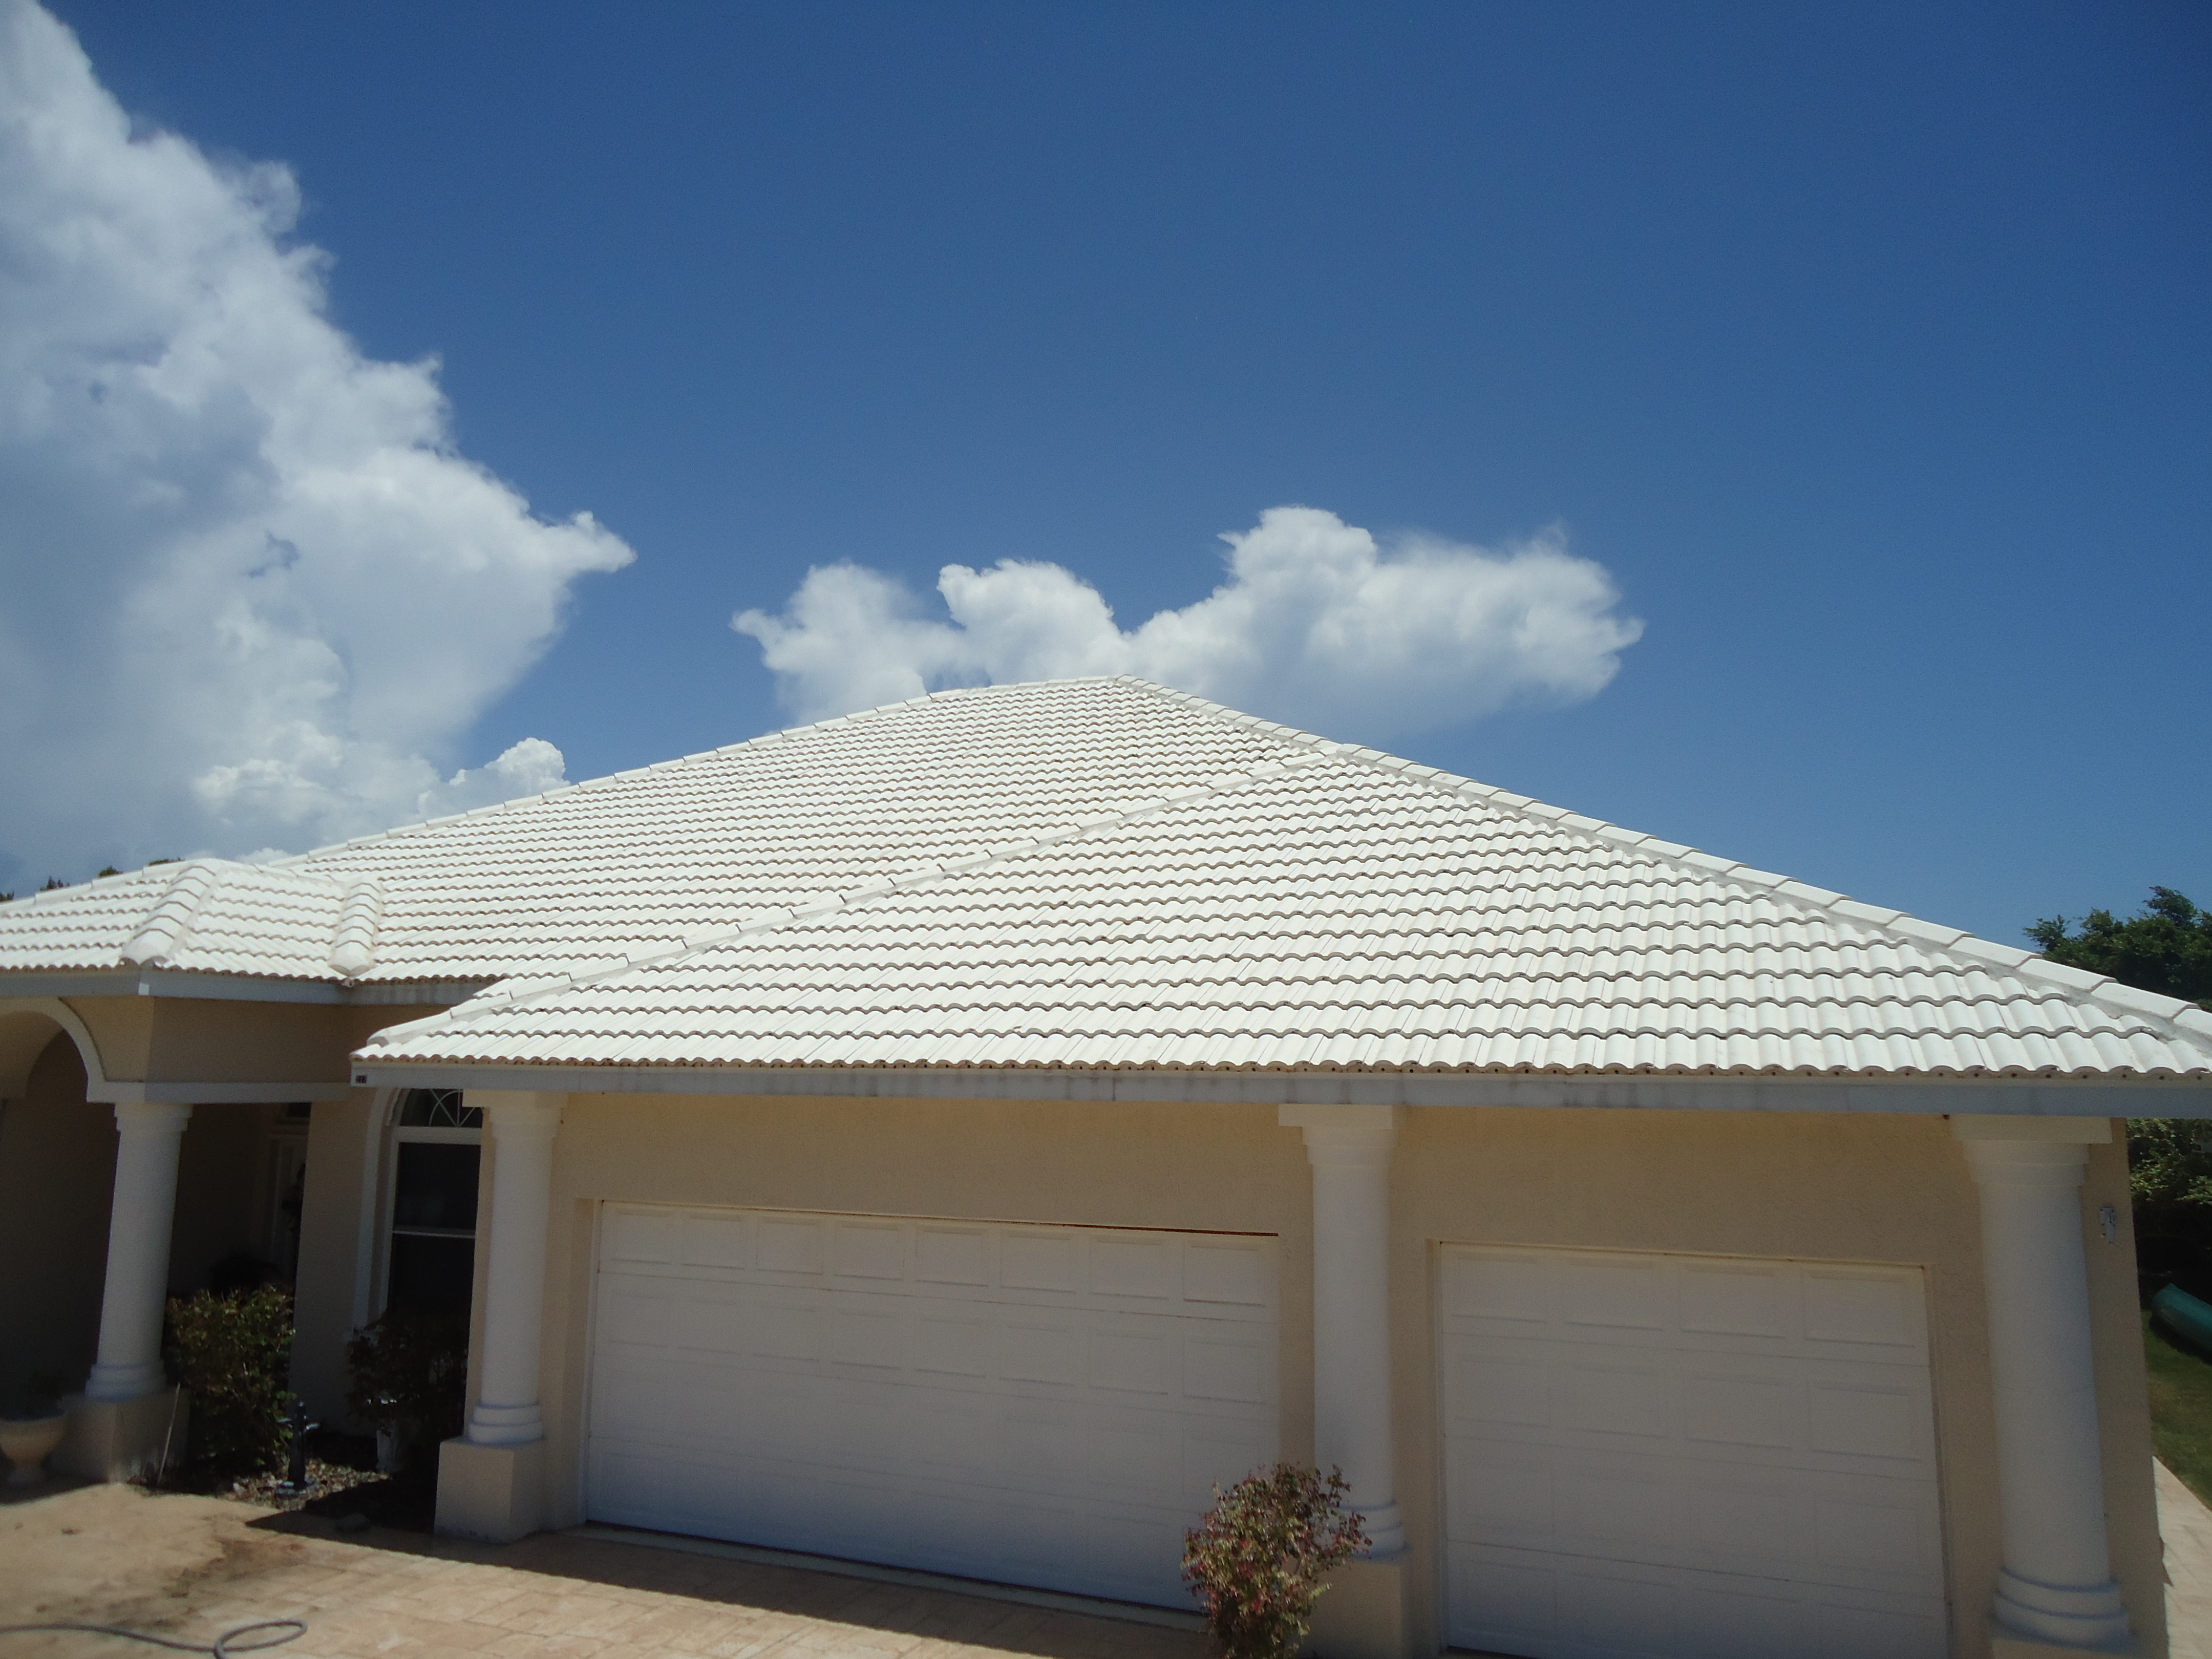 Soft Wash Tile Roof Cleaning Venice Fl Locate A